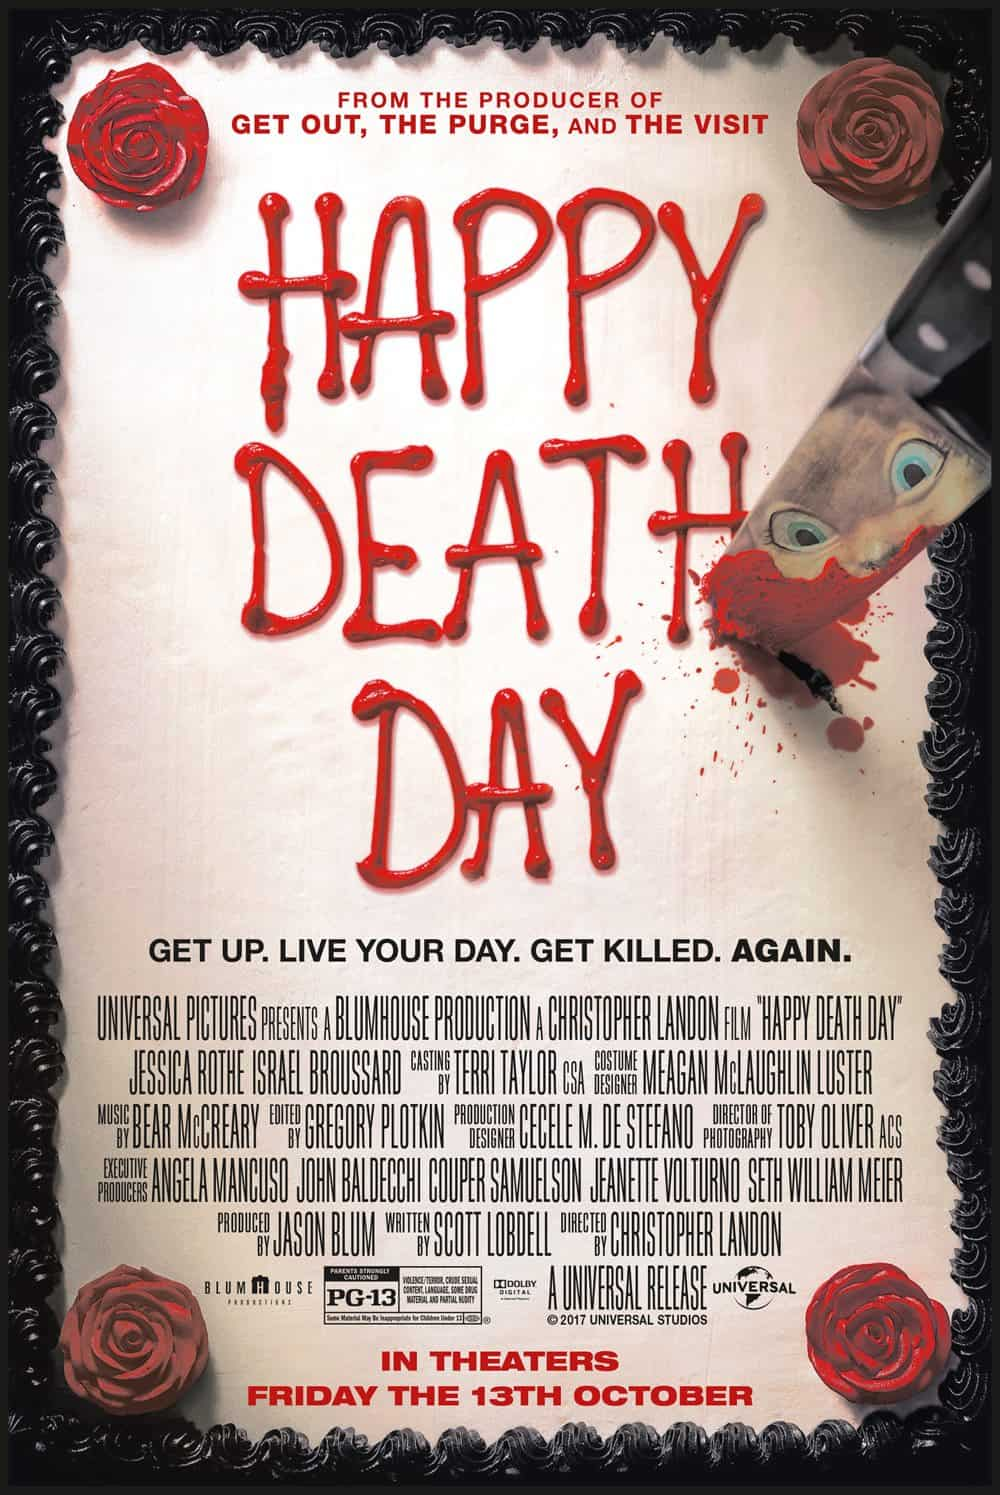 Groundhog Day Movie Quotes Why Happy Death Day Is The New Groundhog Day  Bearcast Media